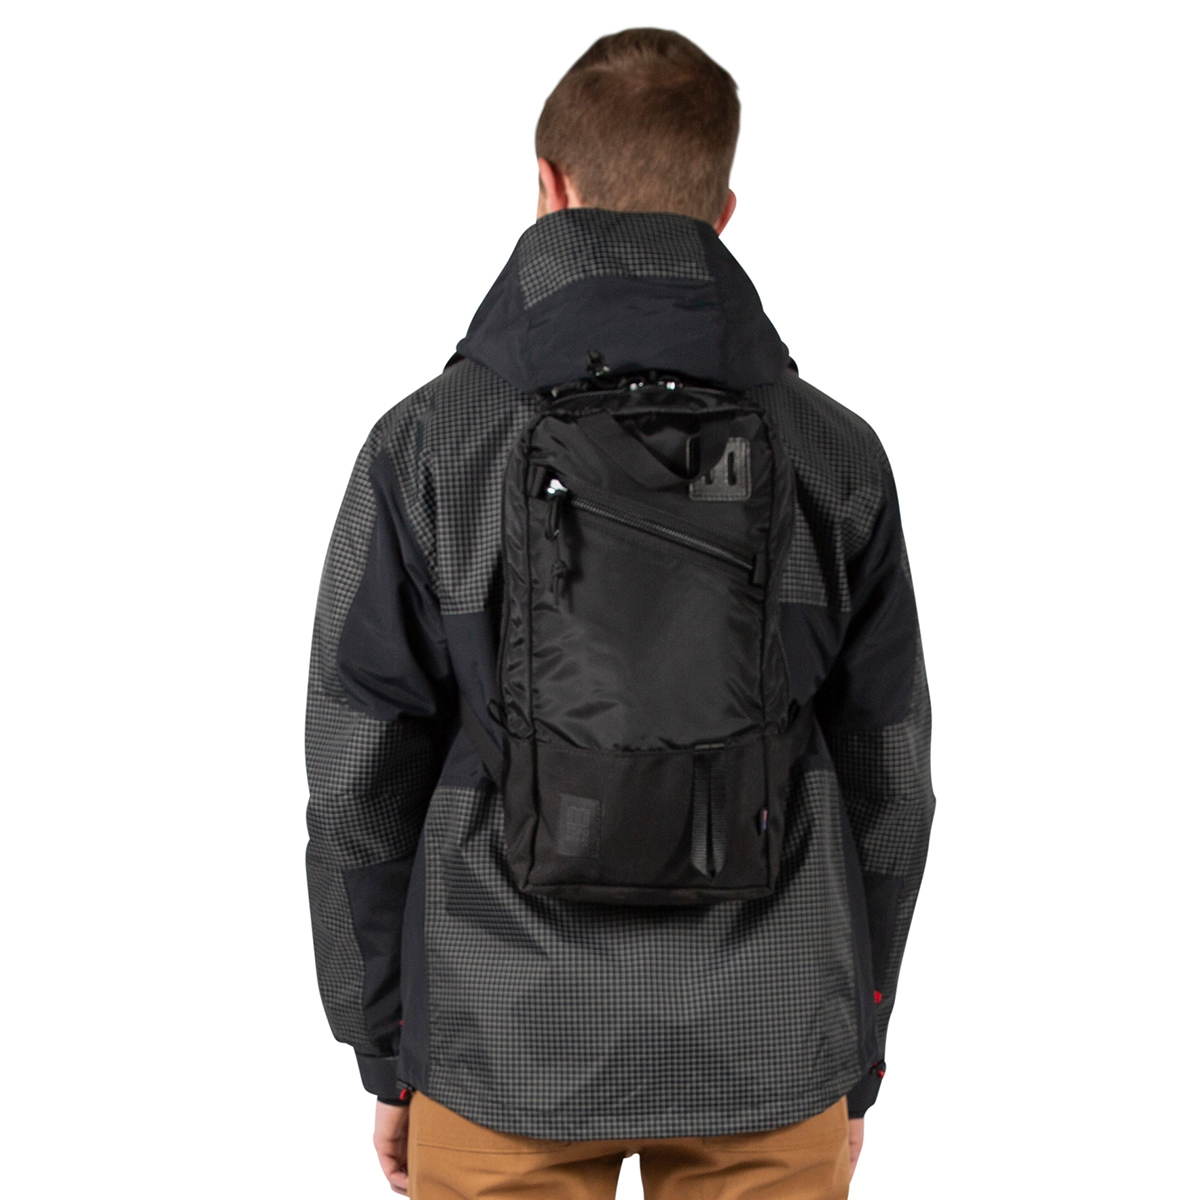 Topo Designs Trip Pack Ballistic Black, a must-have travel companion